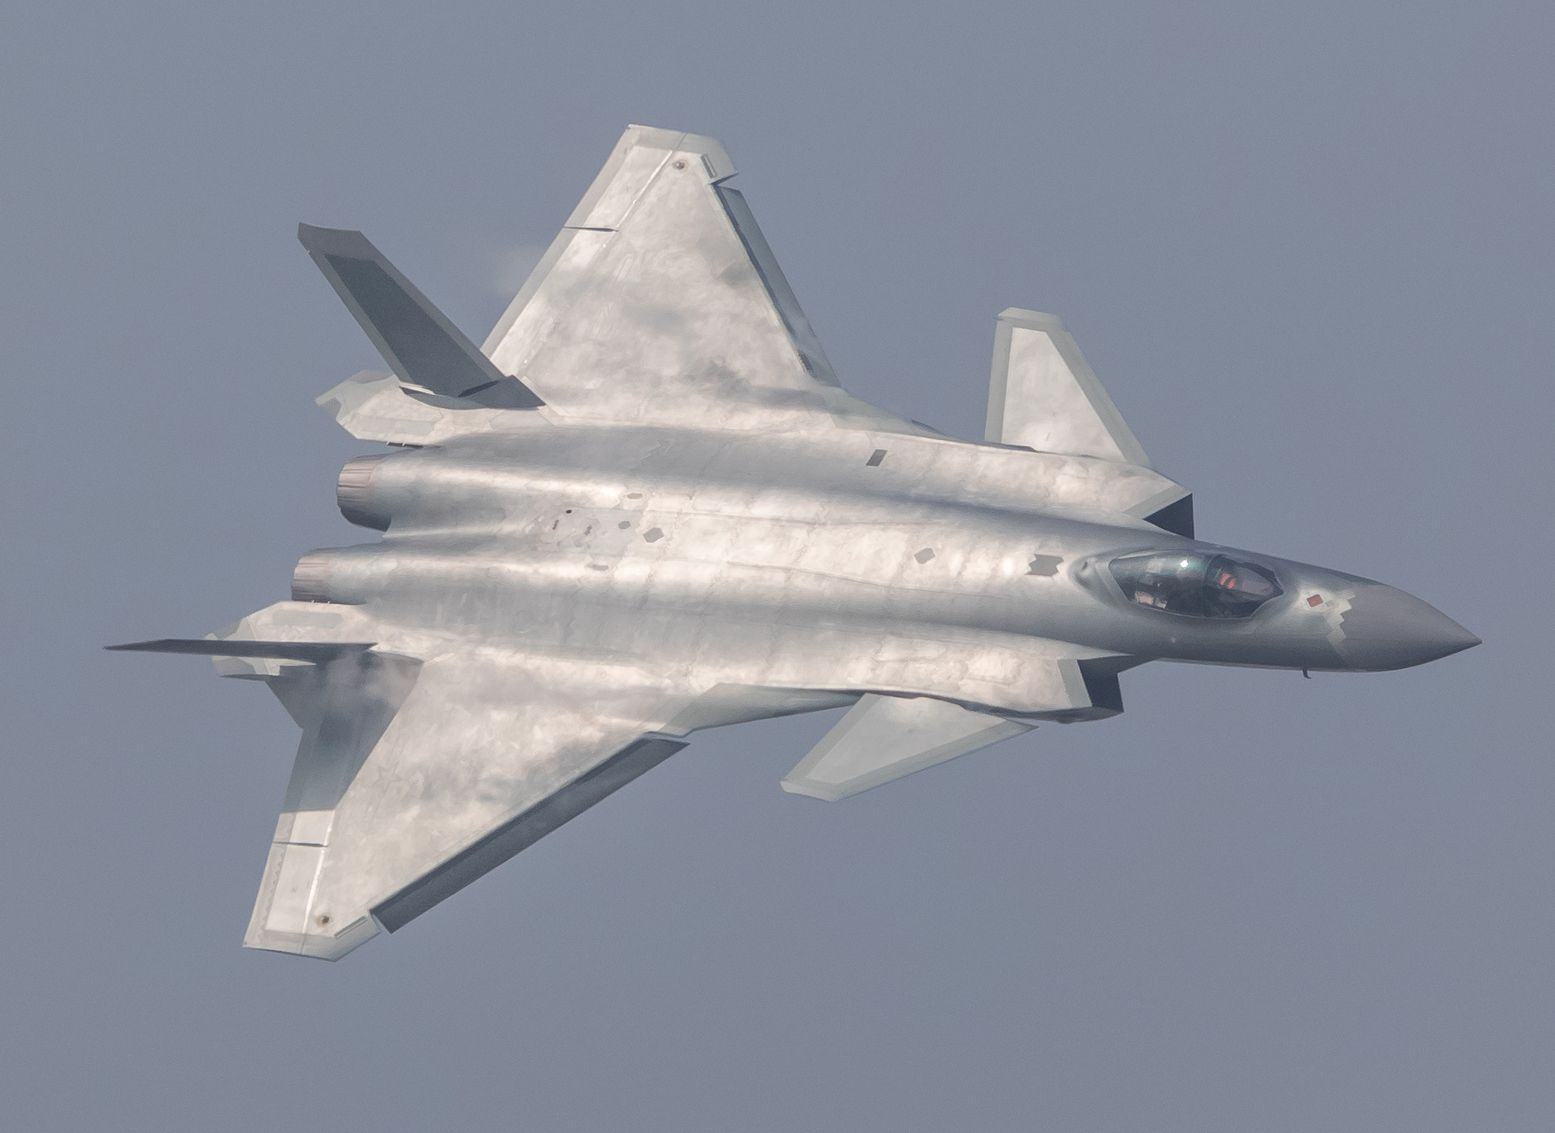 Yes, China Is Now a Major Modern Military Power